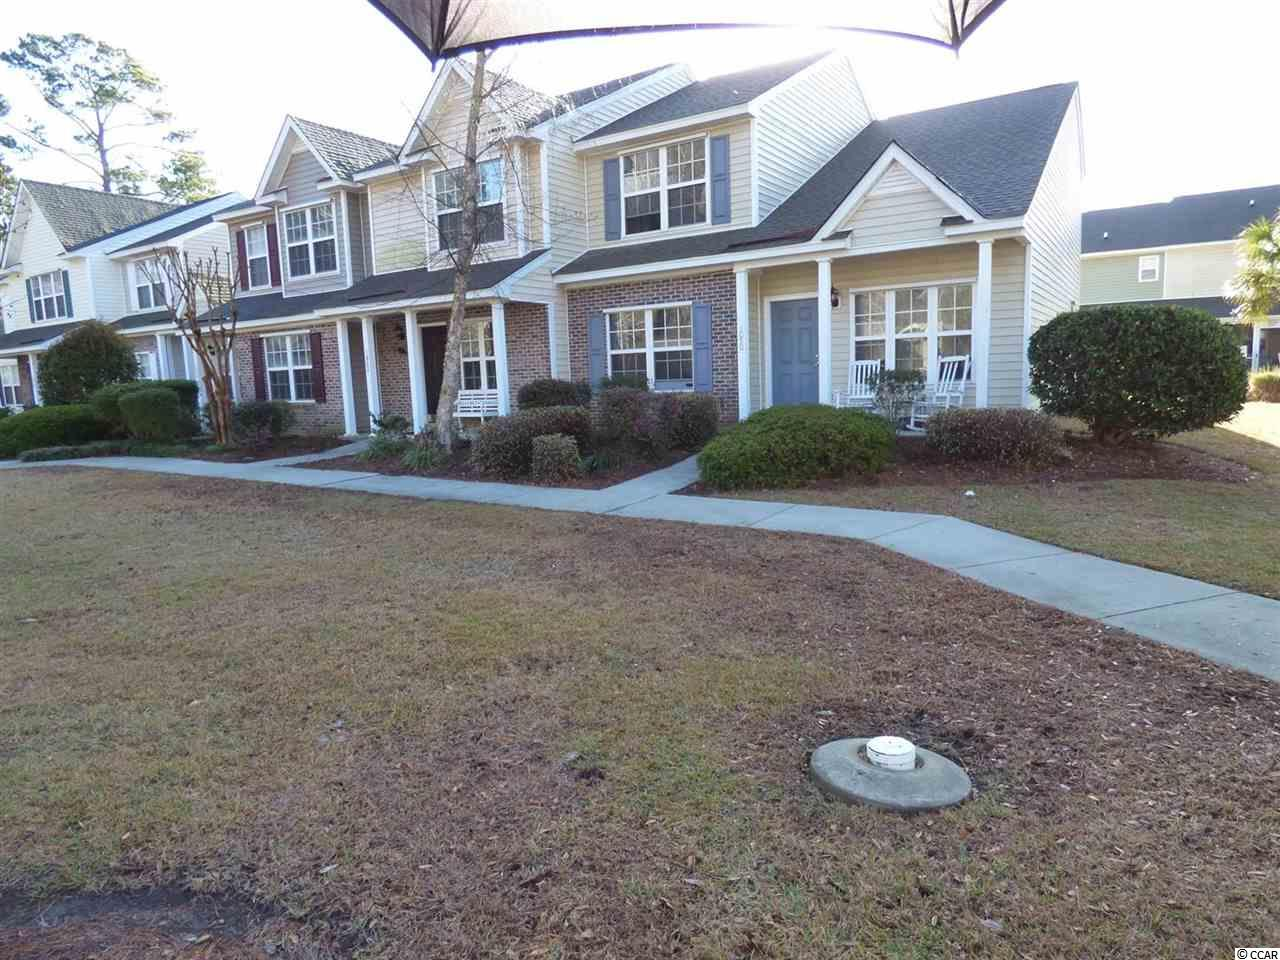 Townhouse MLS:1804112 PARKVIEW SUBDIVISION - 17TH AVE.  1050 Penny Lane Myrtle Beach SC